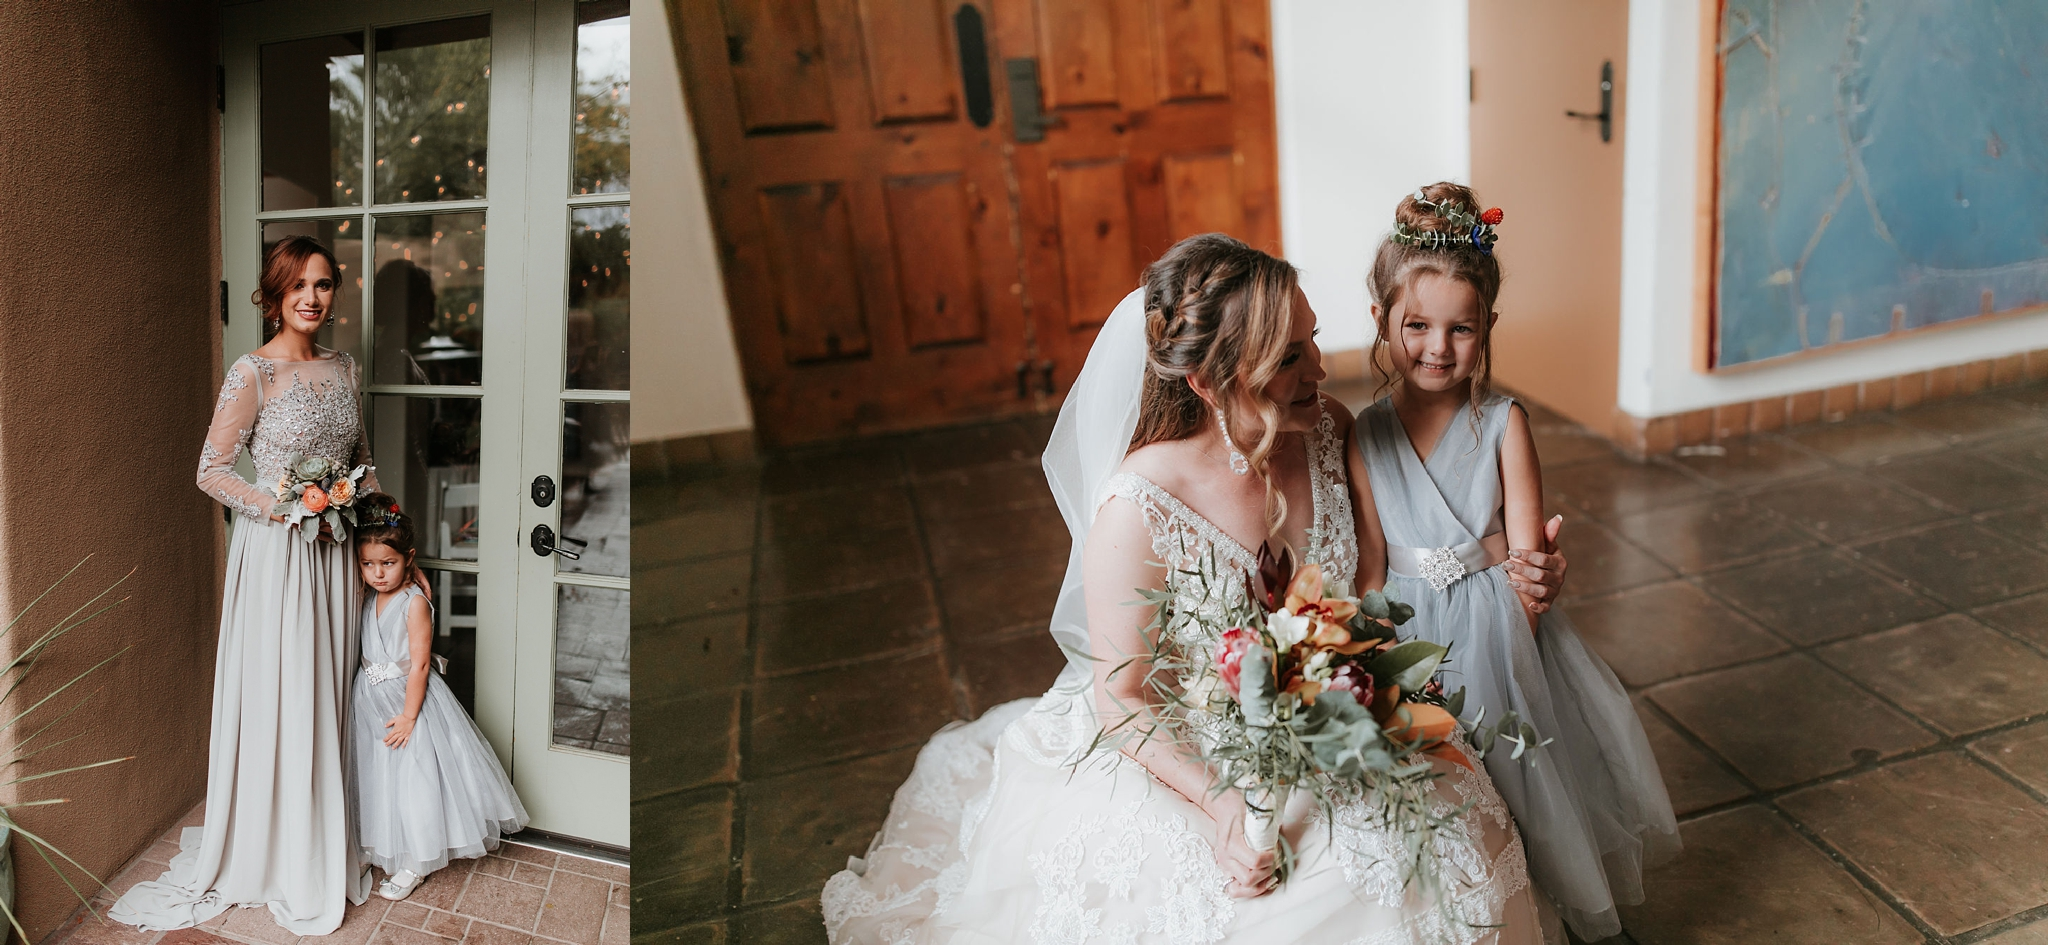 Alicia+lucia+photography+-+albuquerque+wedding+photographer+-+santa+fe+wedding+photography+-+new+mexico+wedding+photographer+-+new+mexico+wedding+-+flower+girl+-+wedding+flower+girl_0014.jpg